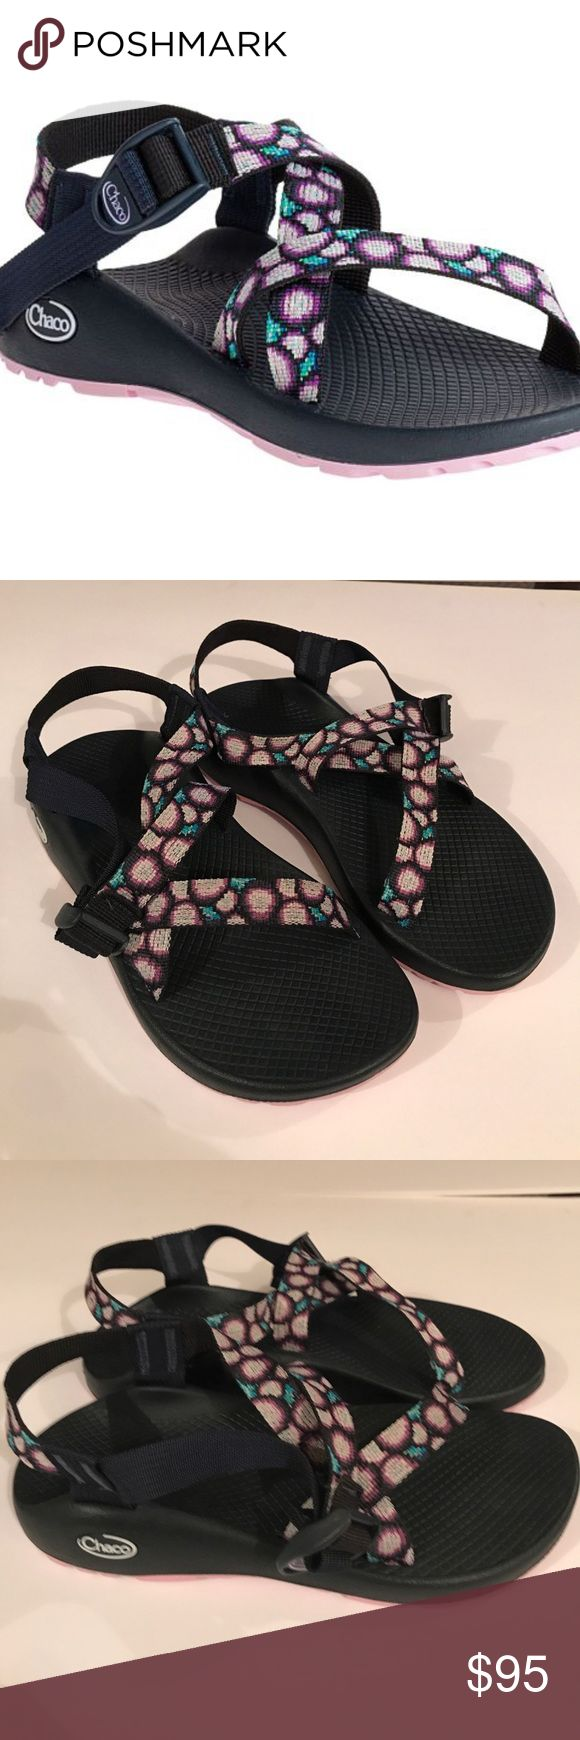 • CHACO • Z/1 classic sandals NWOB Chaco Z/1 classic sandals. Cute purple pattern. New, never worn. Size 8. Open to reasonable offers!  Chaco Shoes Sandals